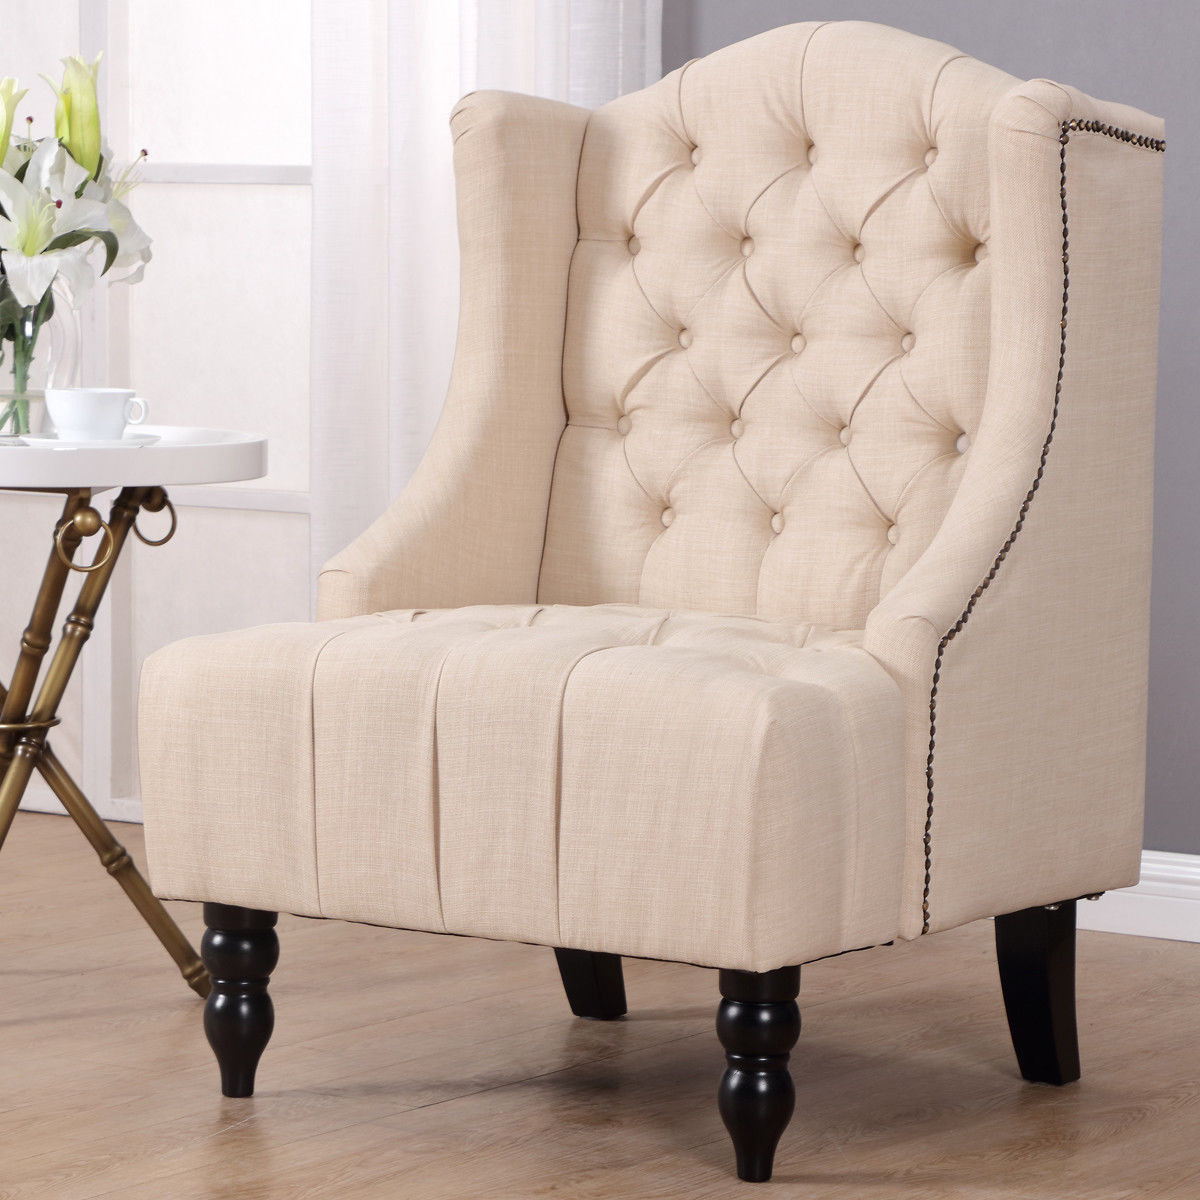 Aliexpress com giantex modern tall wing back tufted accent armchair fabric vintage living room sofa chair nailhead beige furniture hw57313be imall com